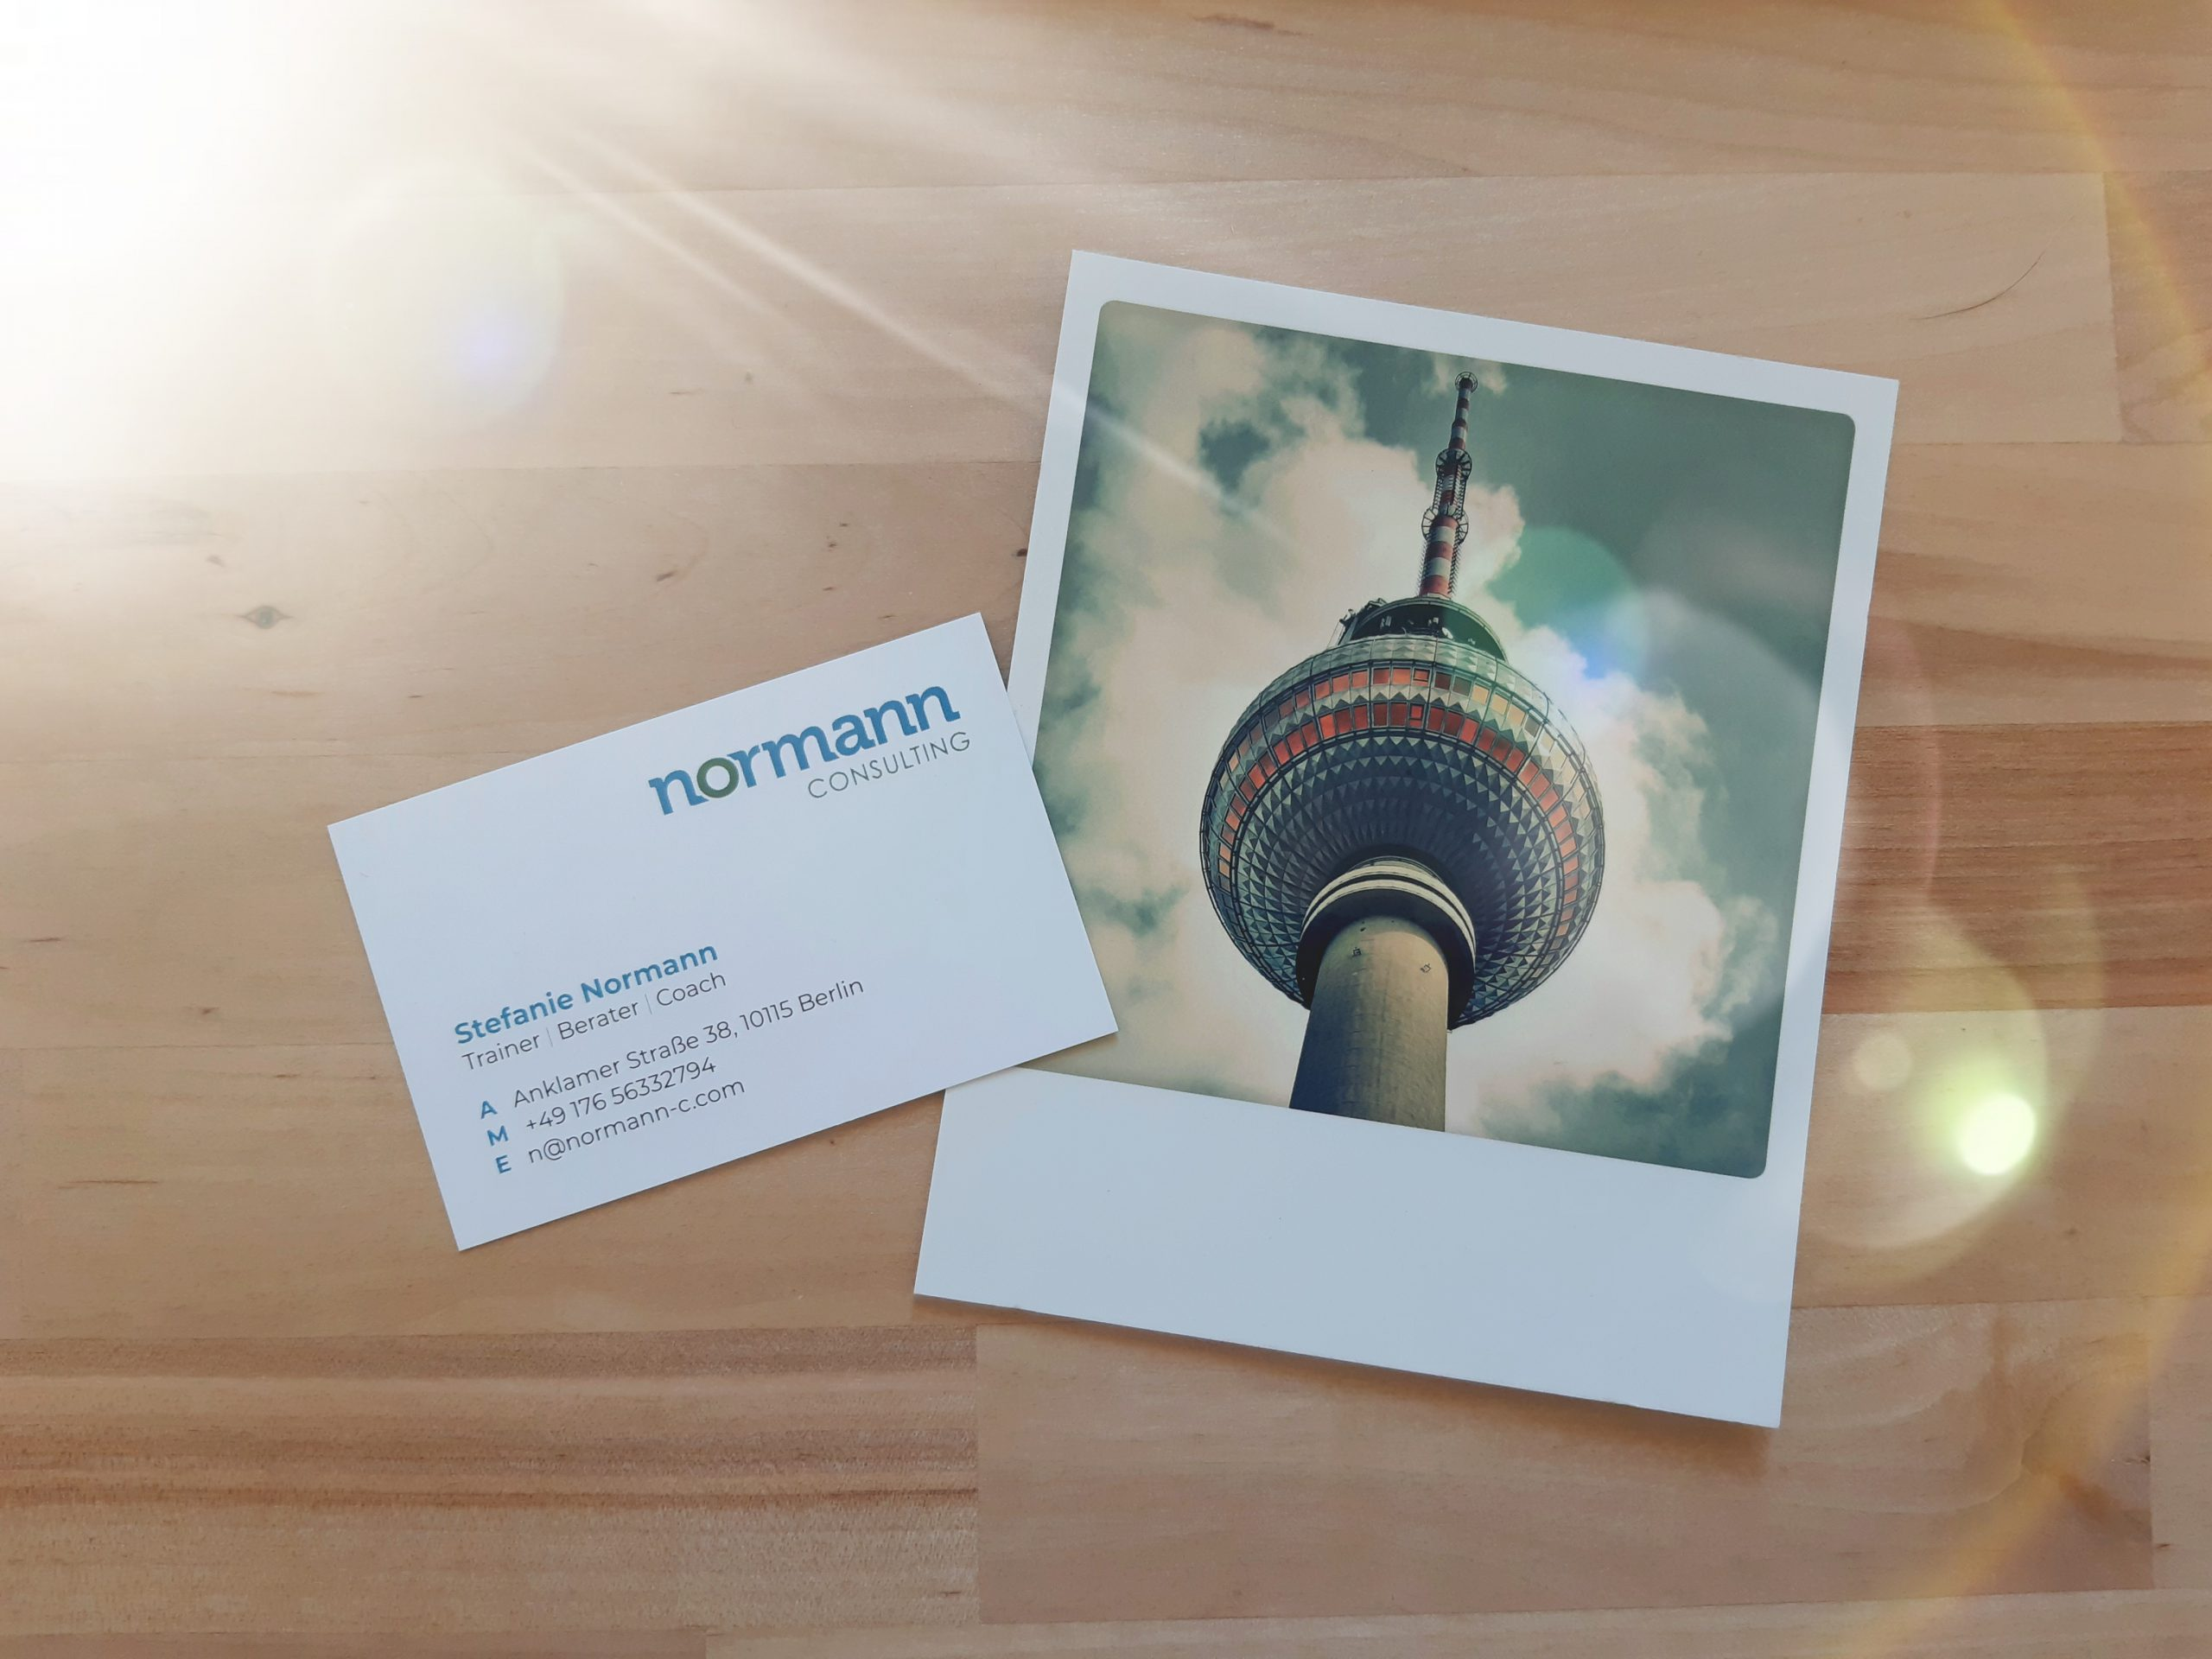 Normann Consulting Kontakt Berlin